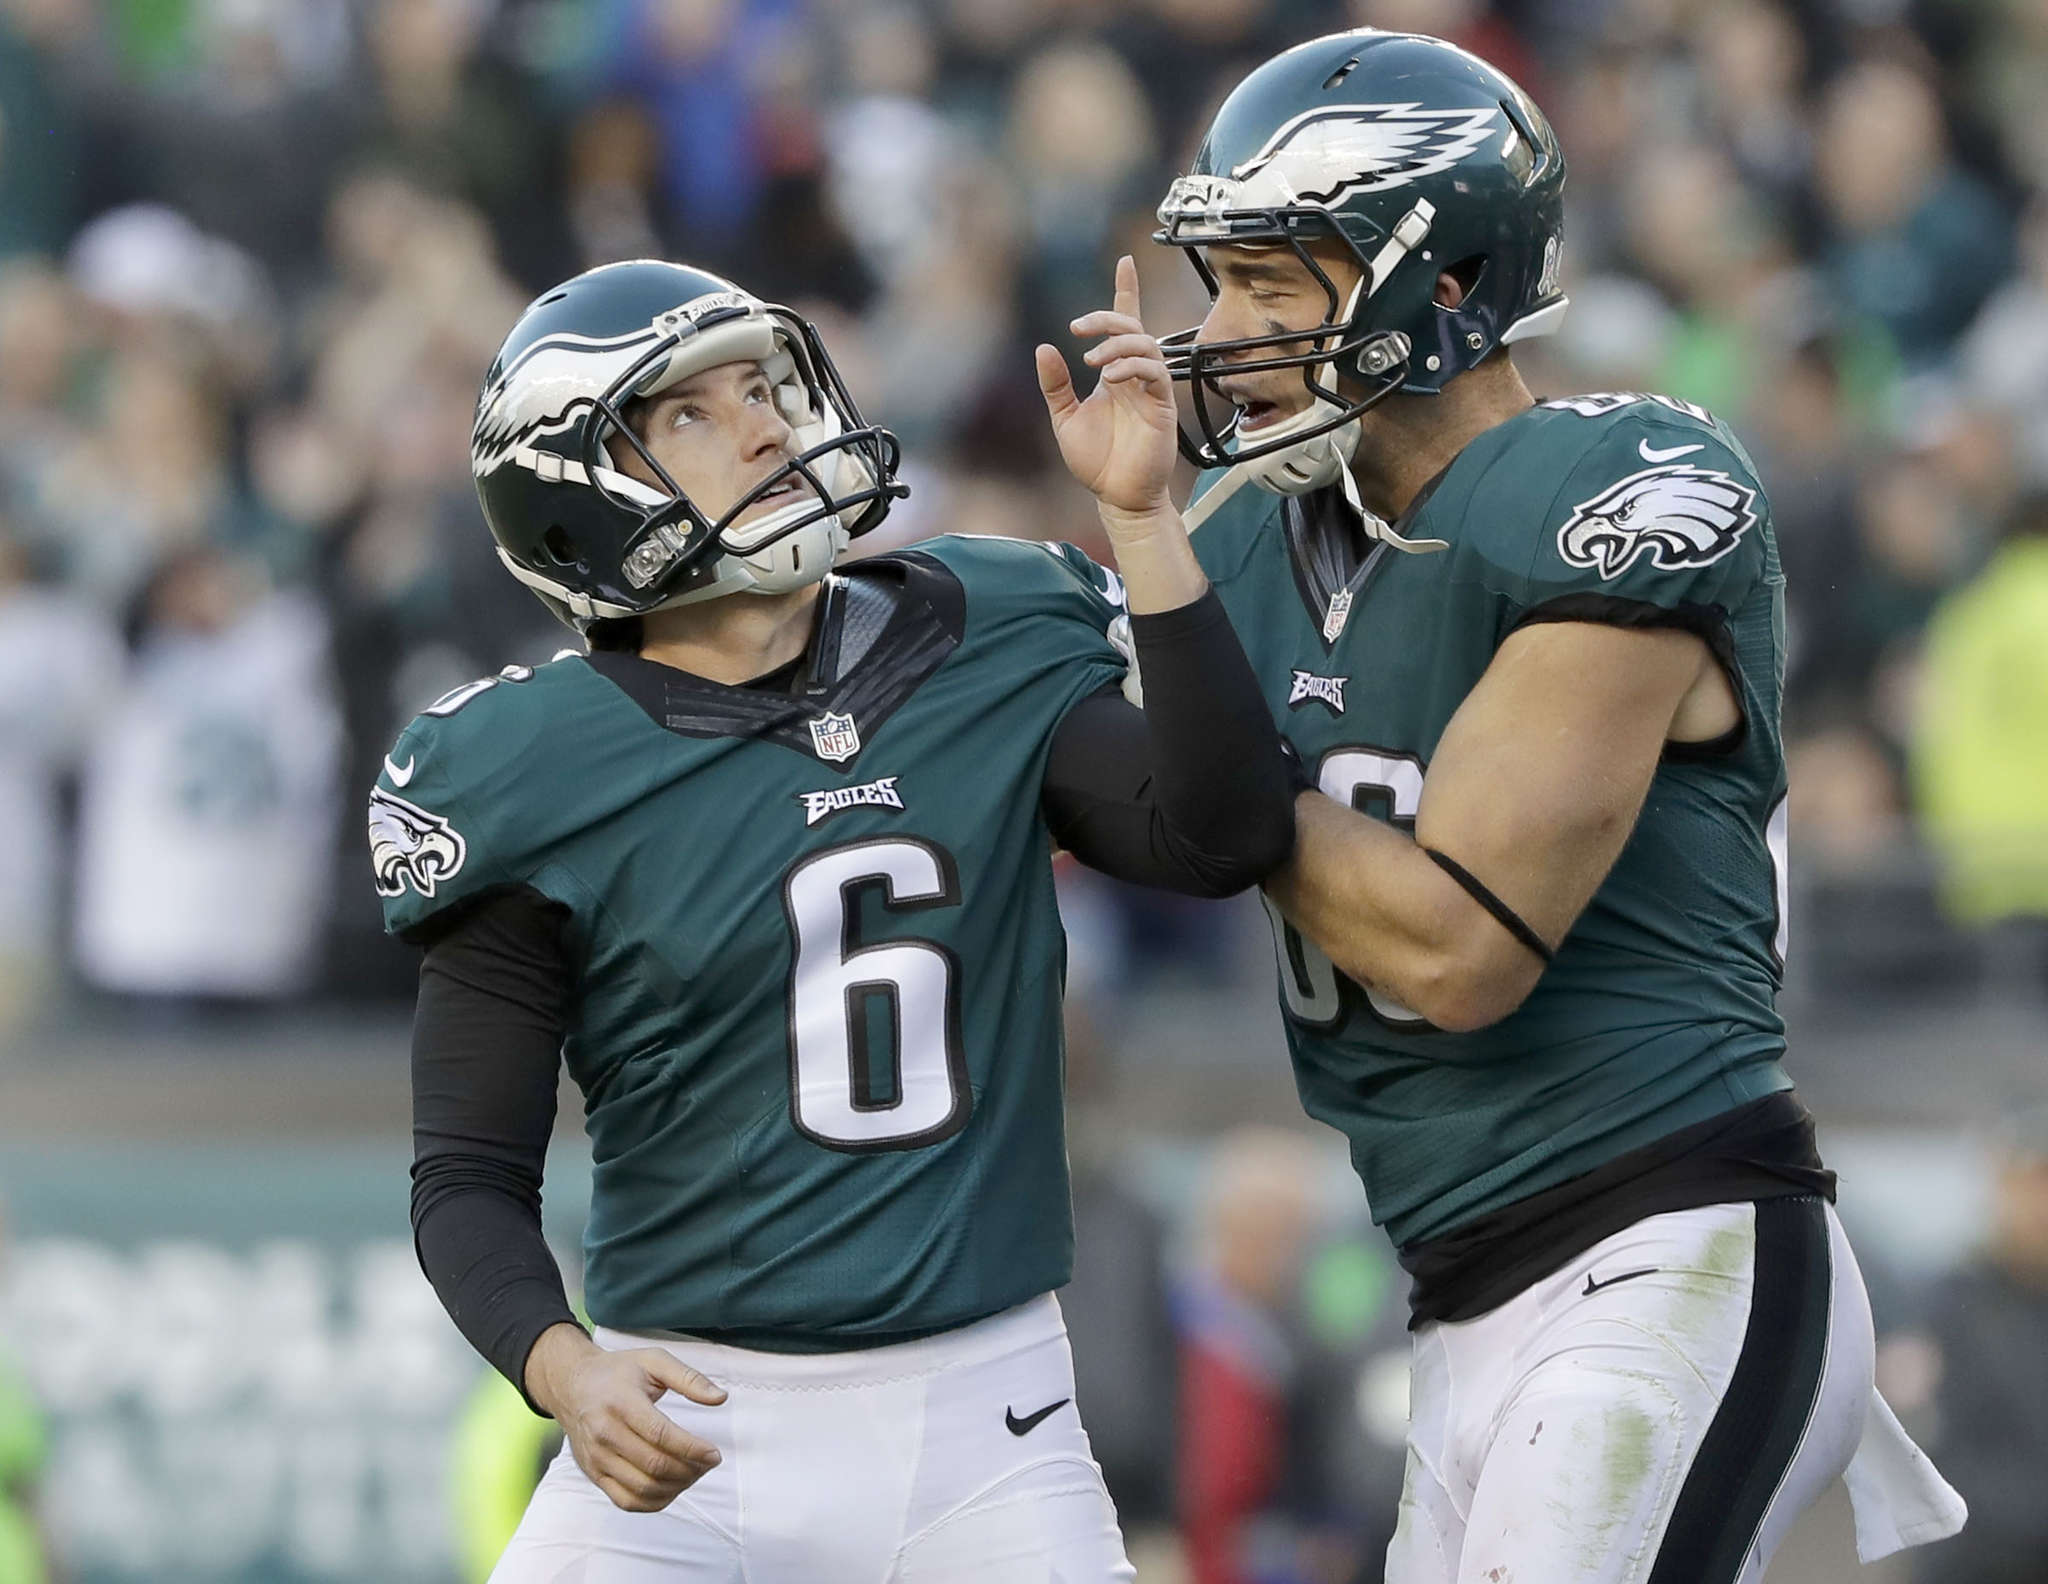 Caleb Sturgis celebrates his 48-yard field goal for game´s final points with Zach Ertz.